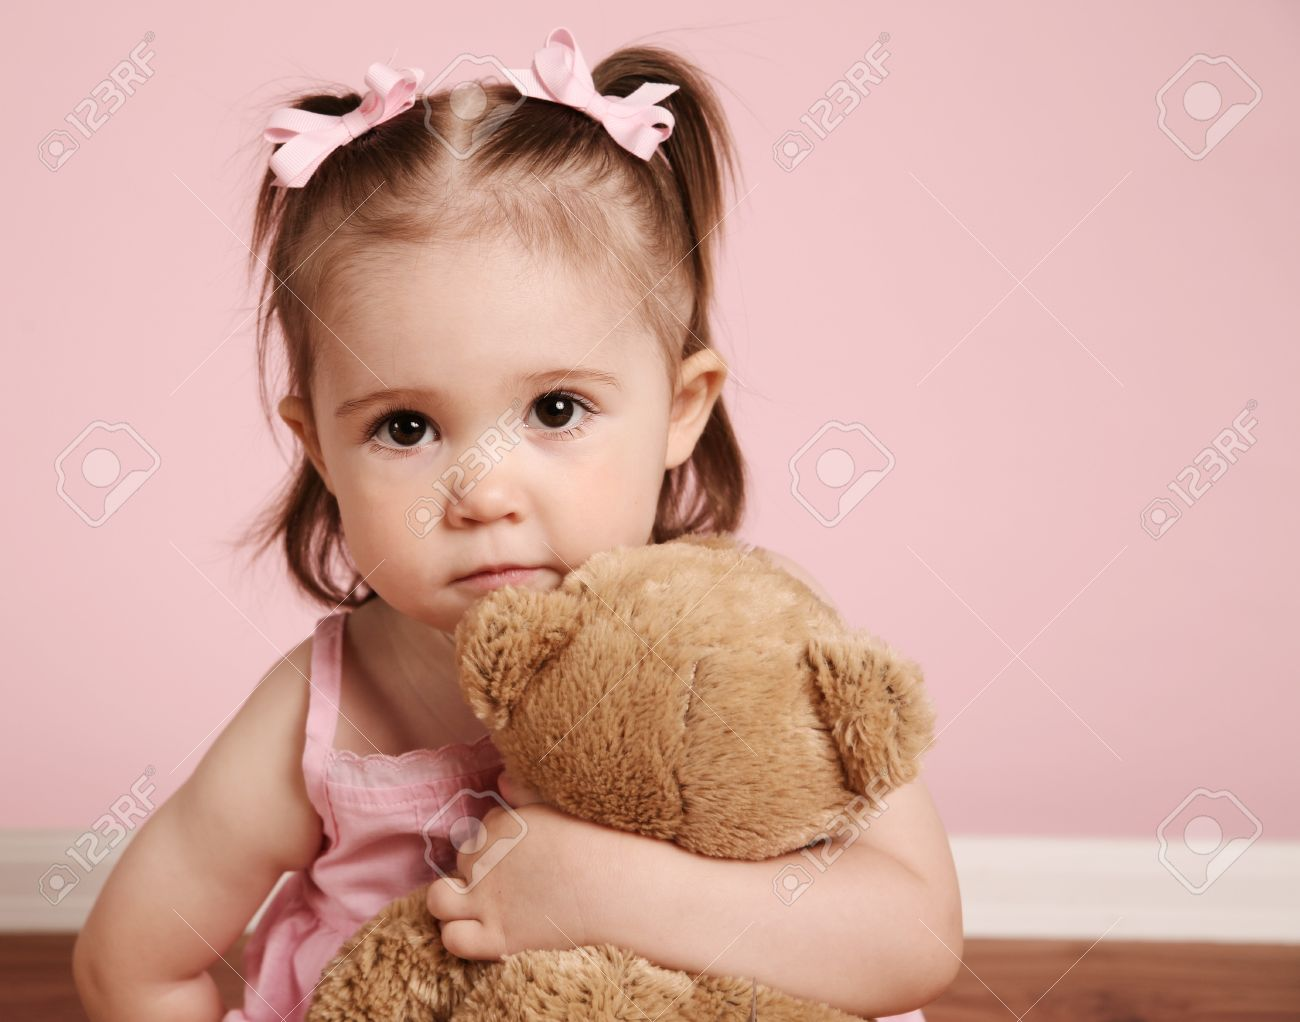 Portrait of an adorable toddler girl hugging a teddy bear on a vintage pink background - 8710185